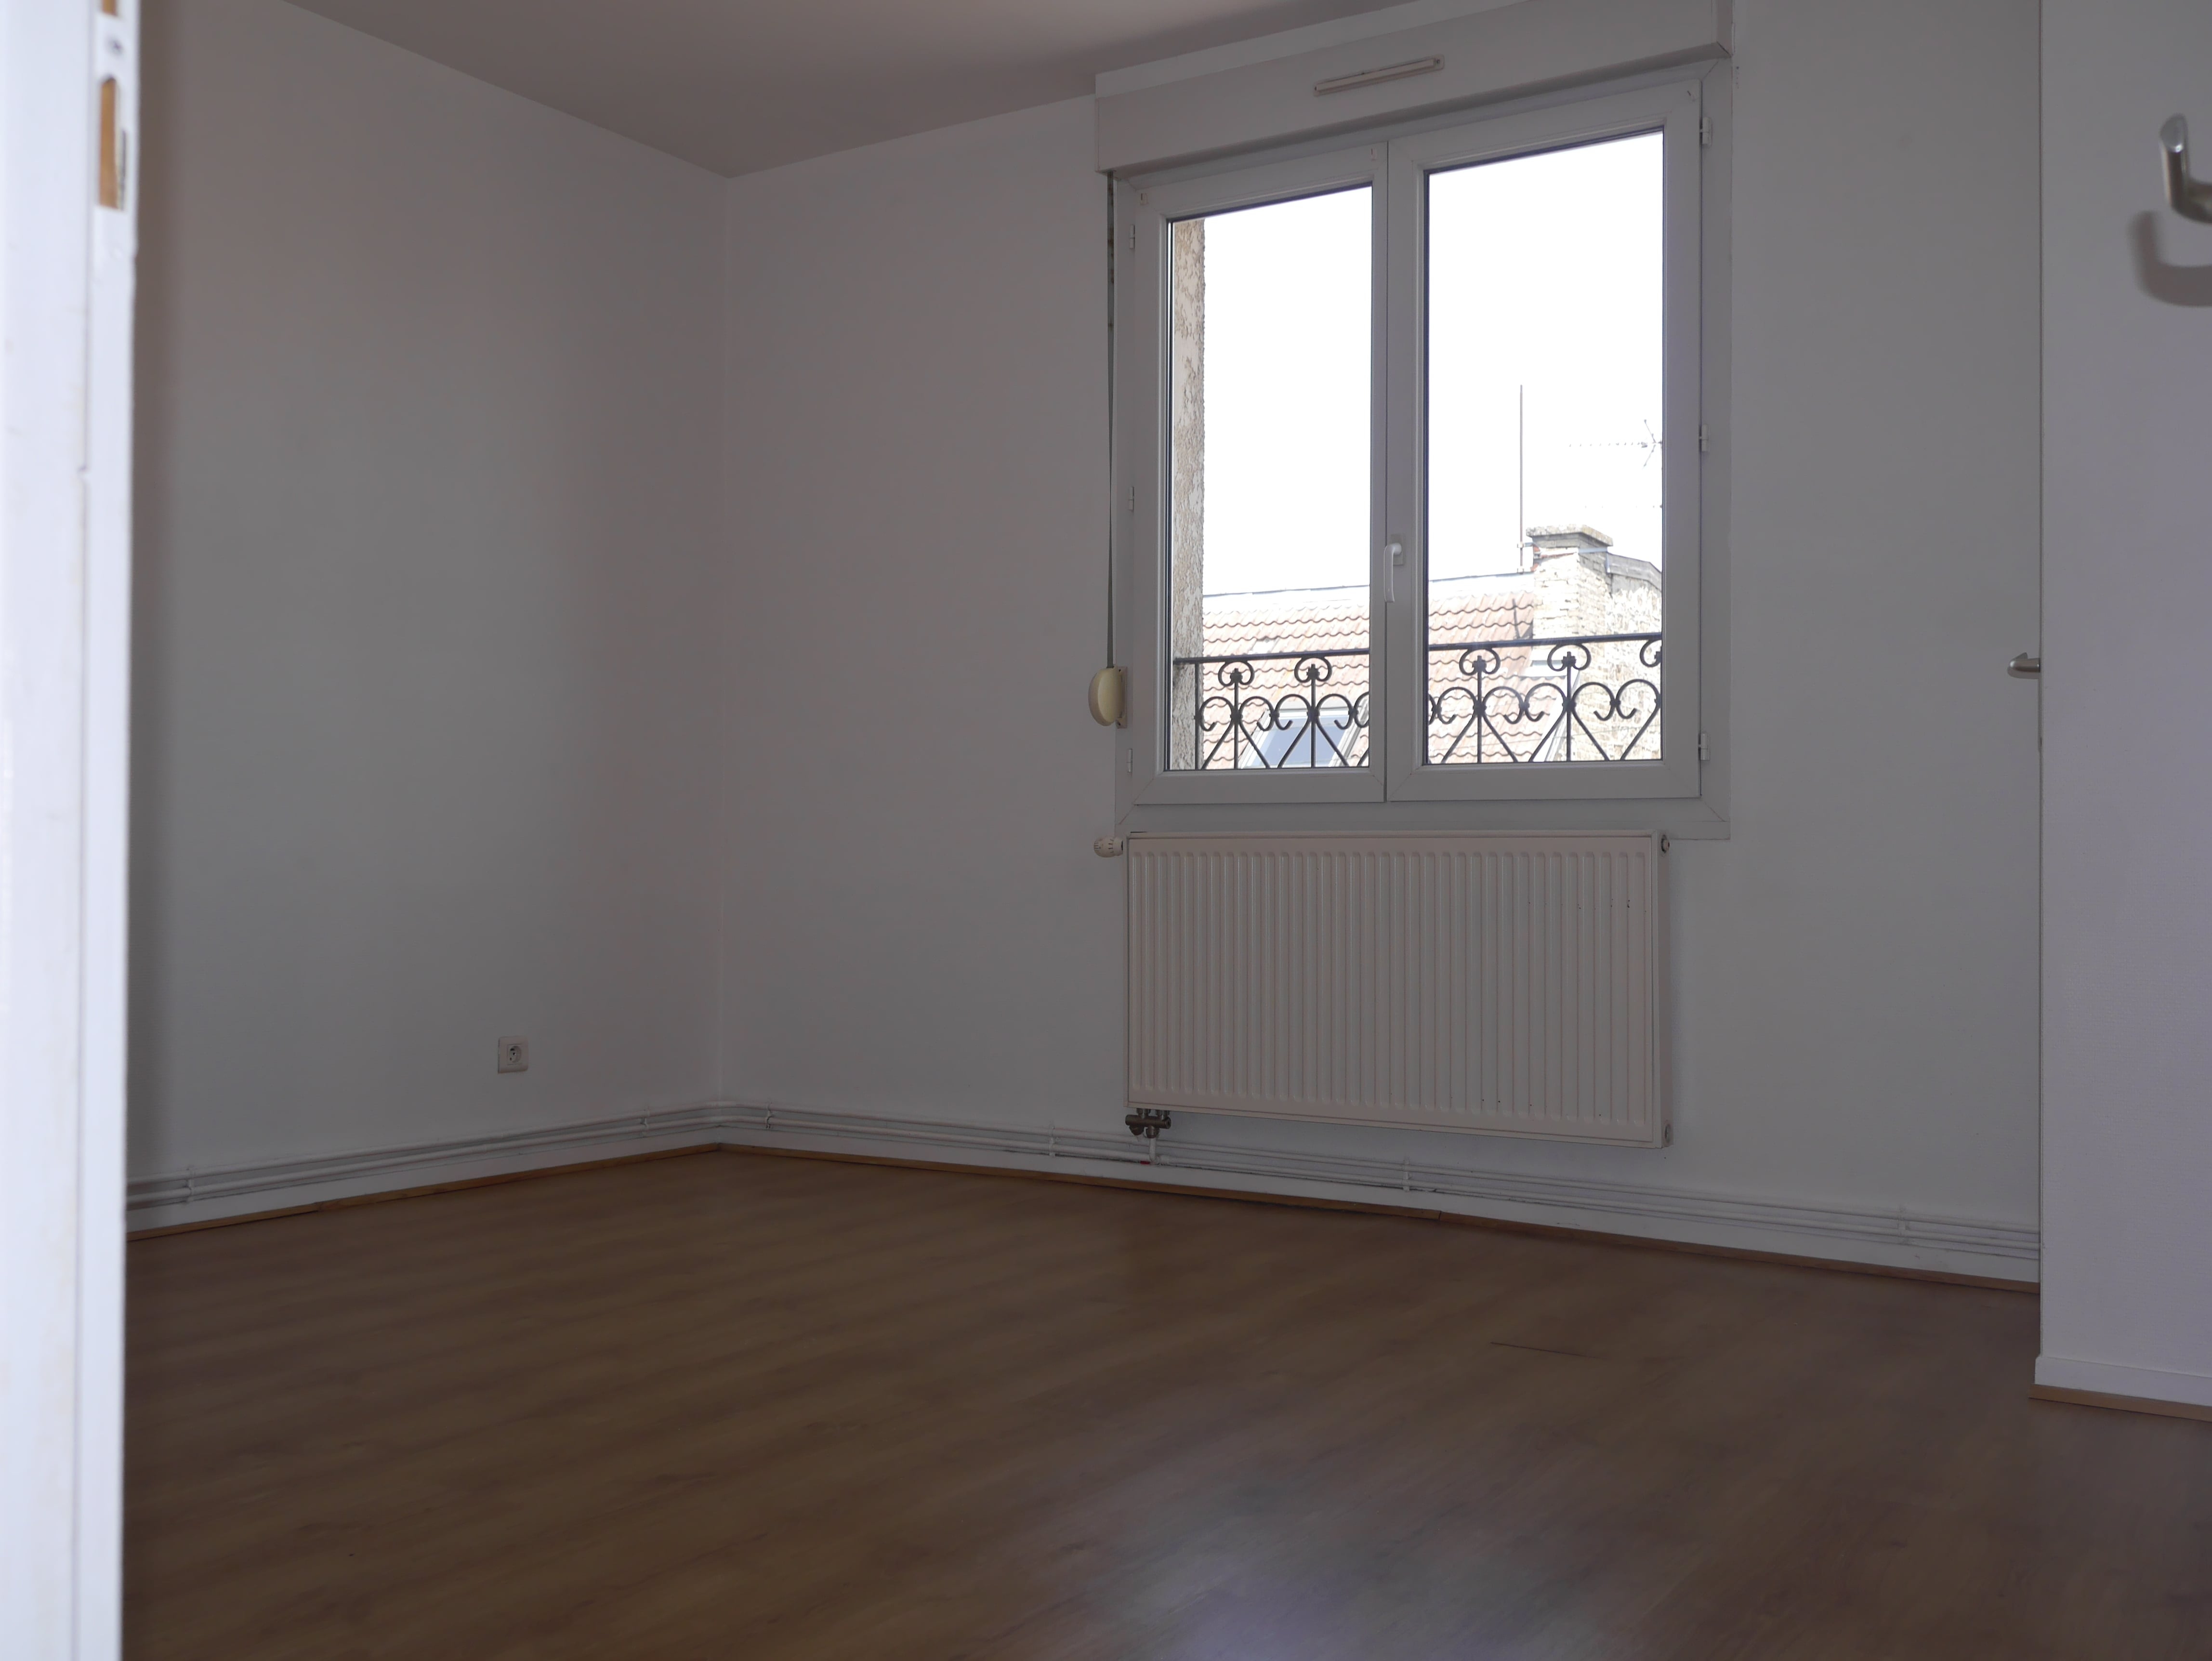 Damonte LOCATION APPARTEMENT T3 CHALONS EN CHAMPAGNE CL1601